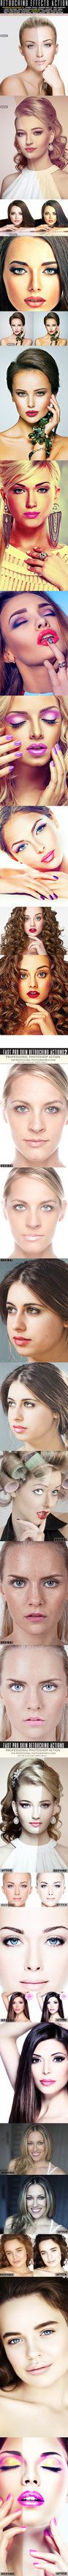 DOWNLOAD:     goo.gl/mAoi3hSimple and fast way to retouch skin images in photoshop?... this is the simple preset you need. Professional results & save time.T...